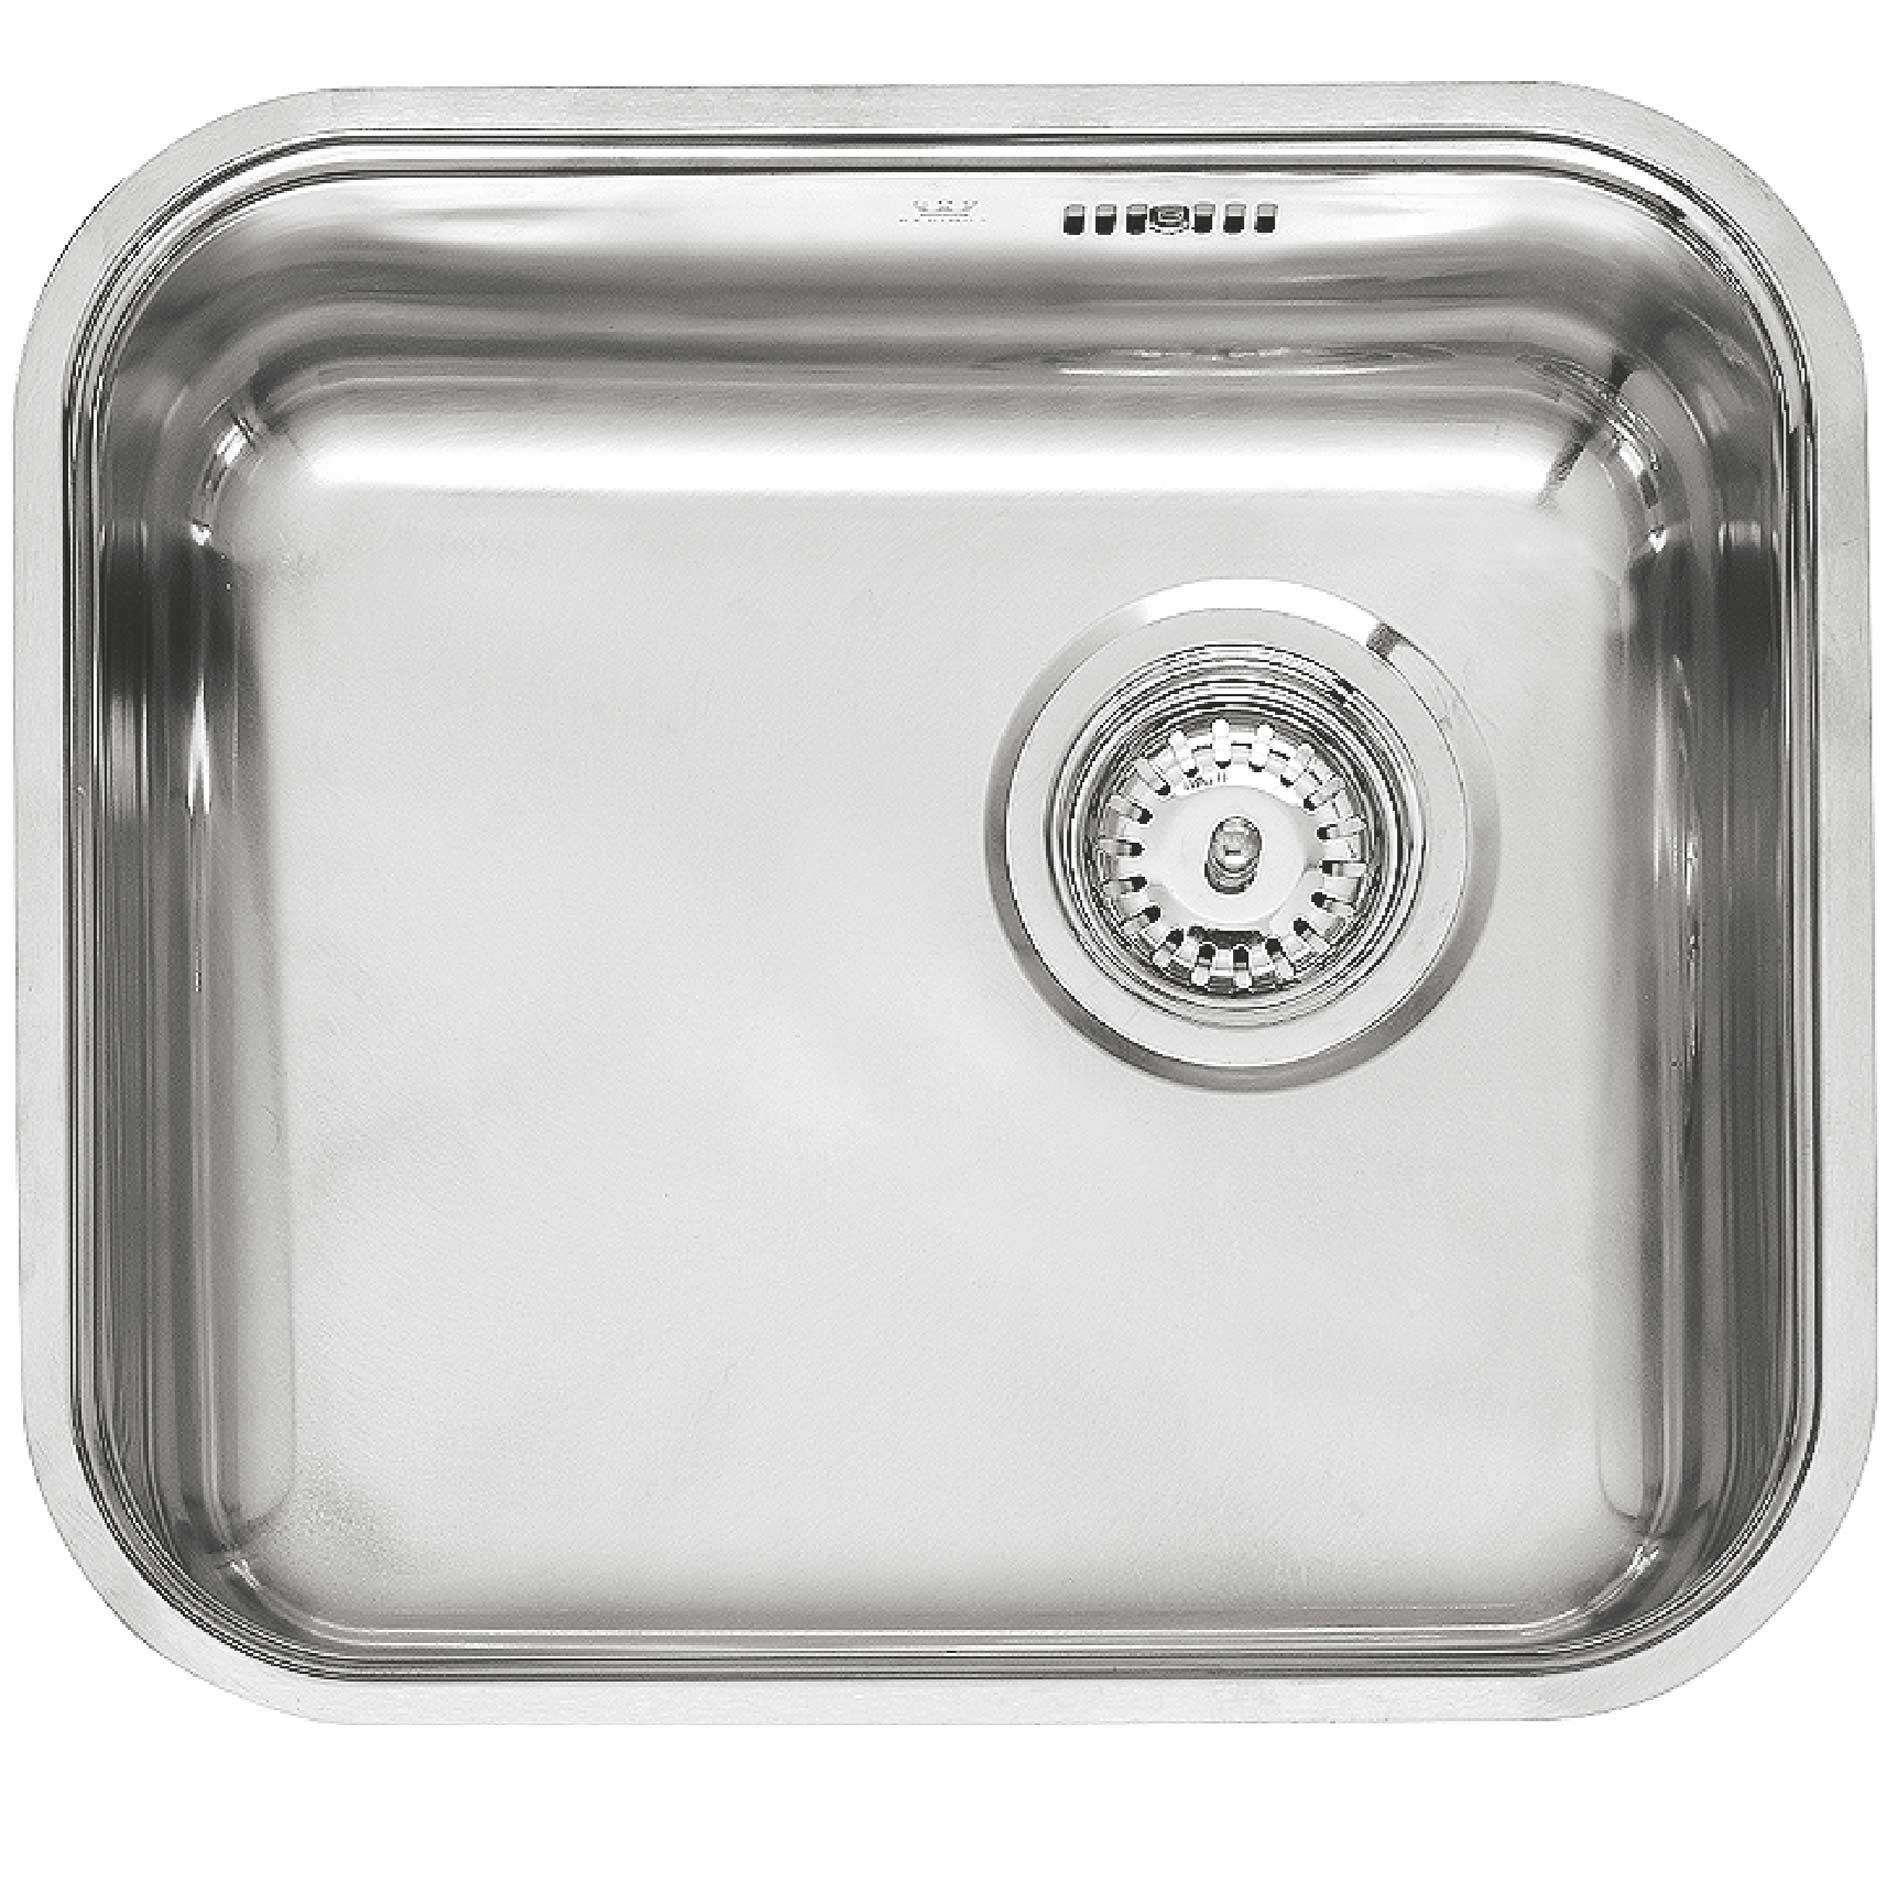 Picture of L18 4035 OKG / RF313S Stainless Steel Sink